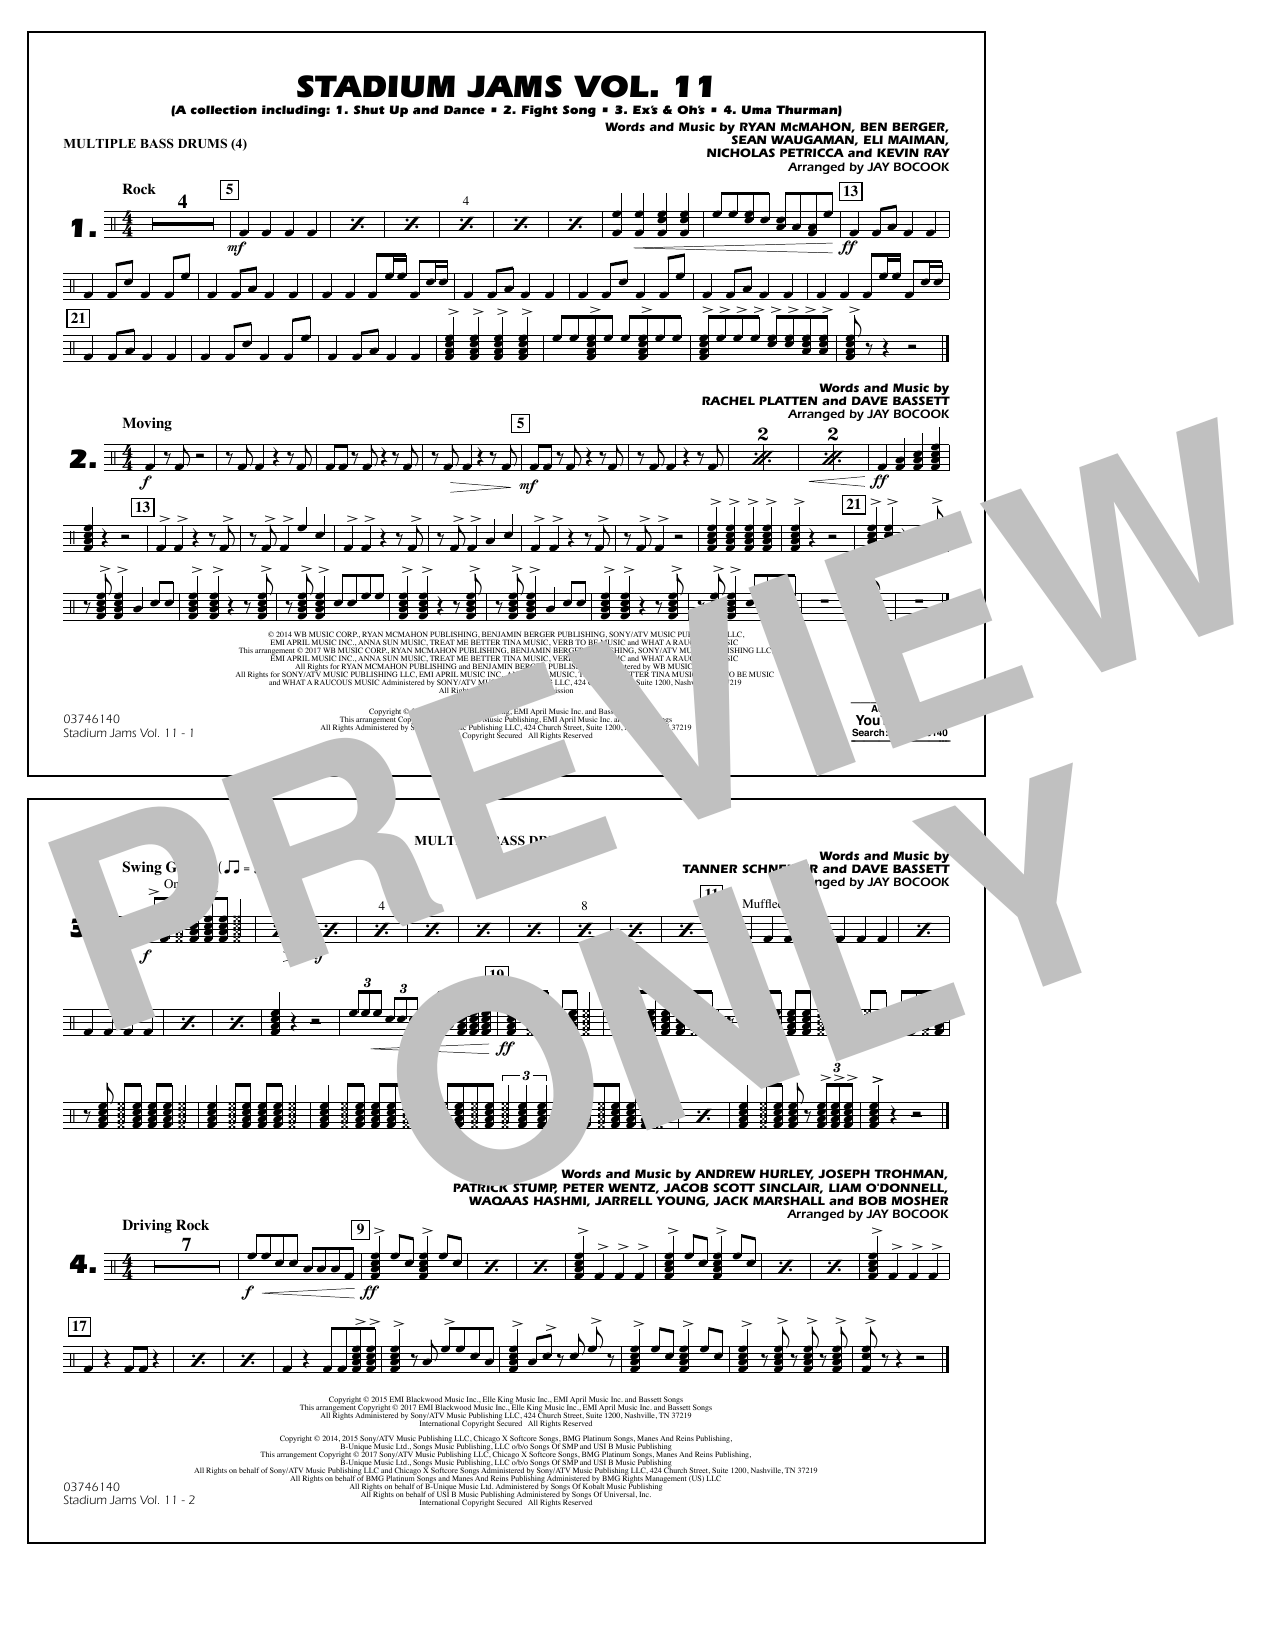 Stadium Jams Volume 11 - Multiple Bass Drums Sheet Music